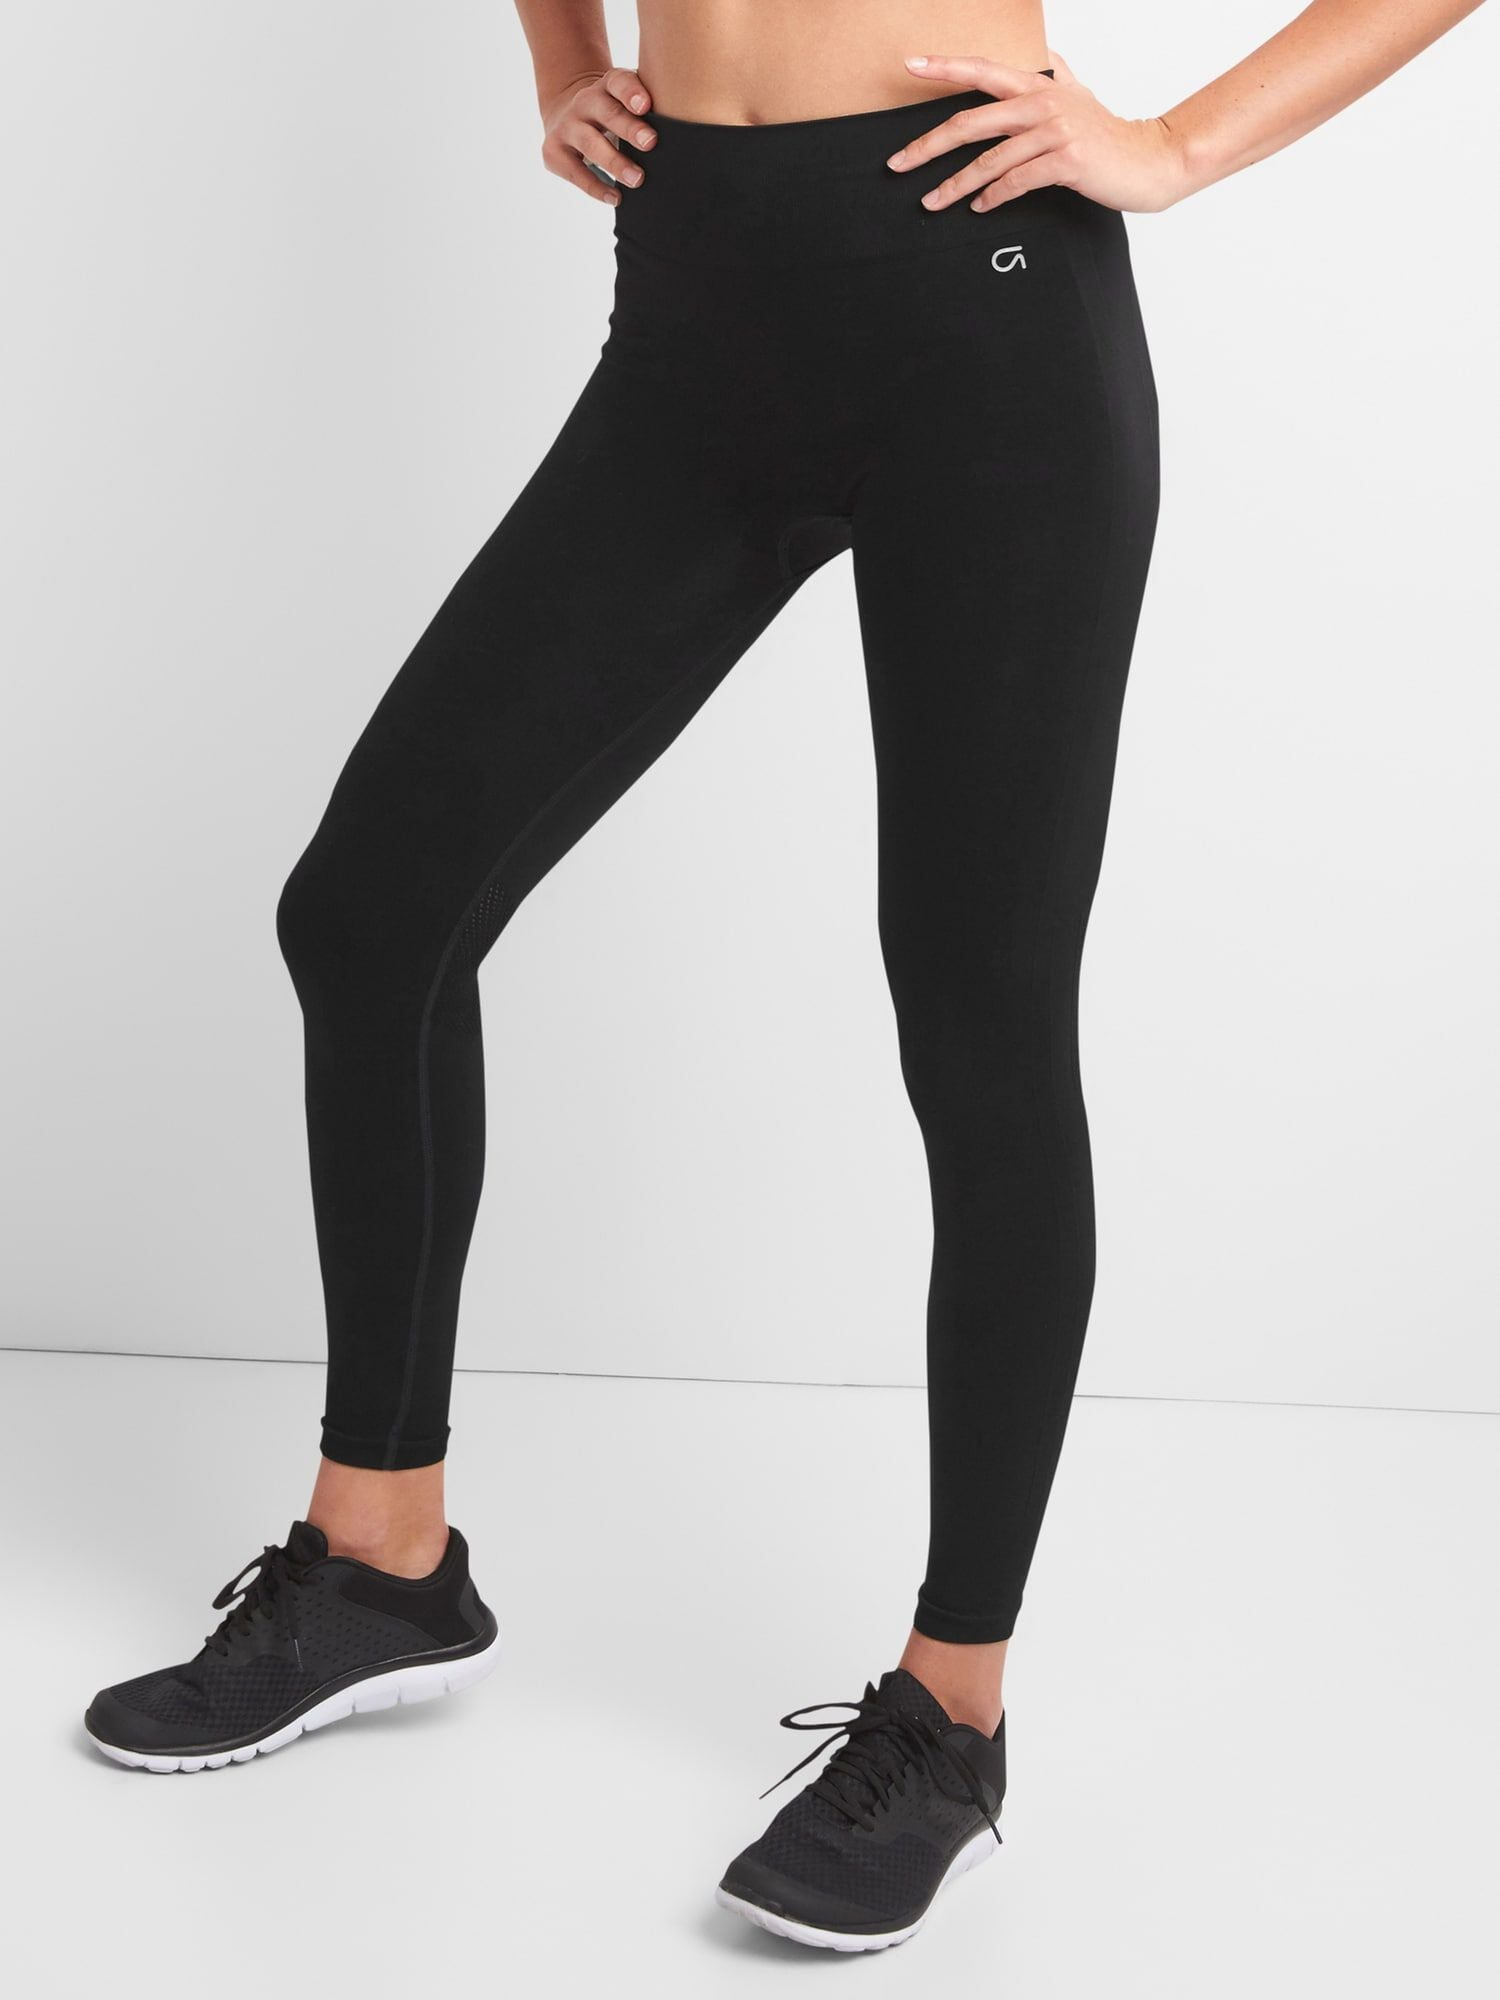 Communication on this topic: These 20 Leggings Have 2,000 5-Star Reviews, these-20-leggings-have-2-000-5-star-reviews/